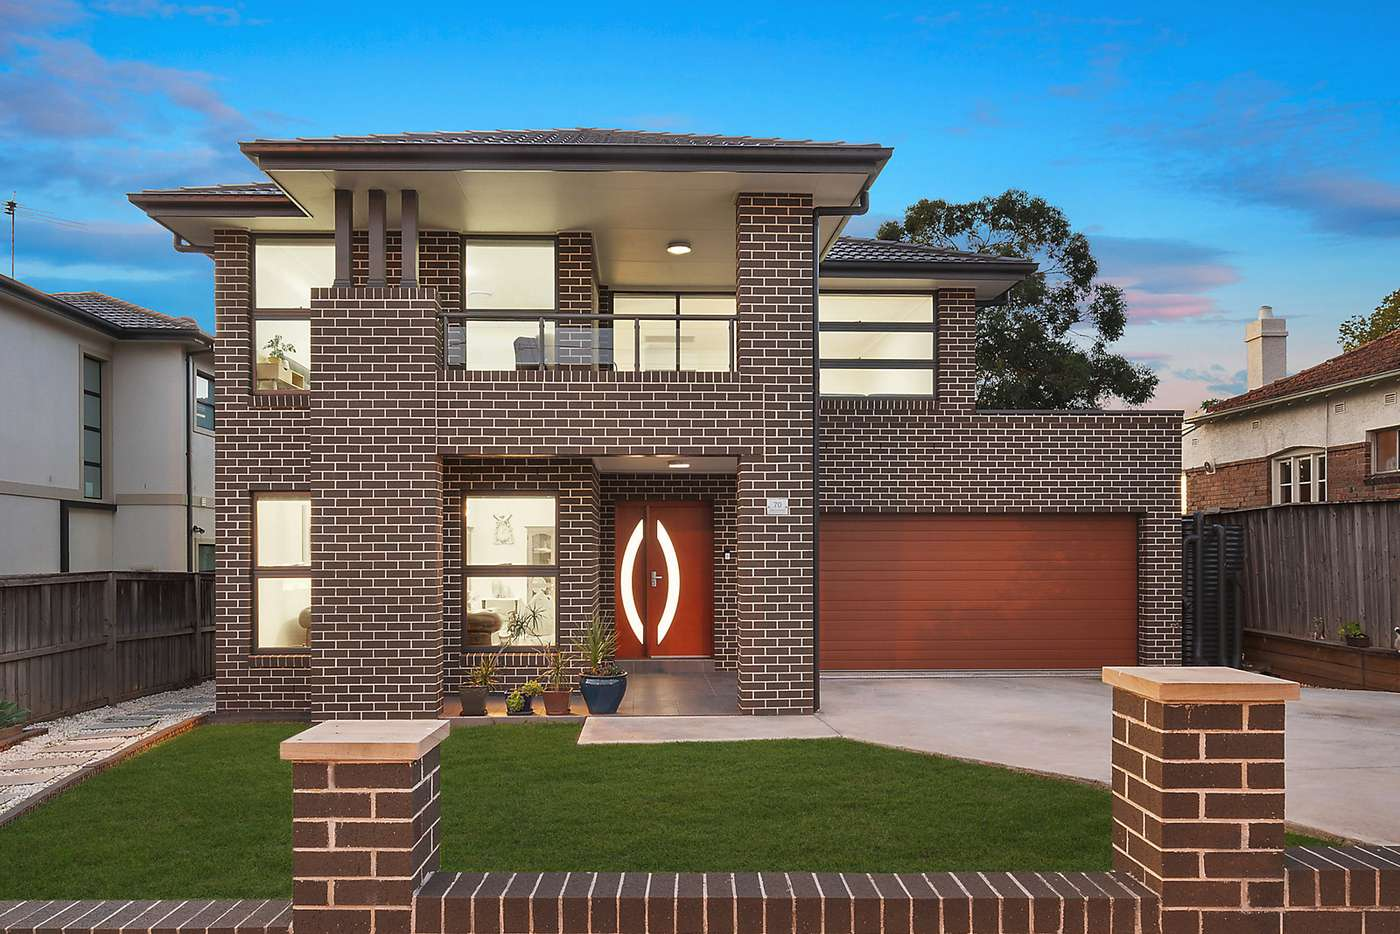 Main view of Homely house listing, 70 Lane Cove Road, Ryde NSW 2112